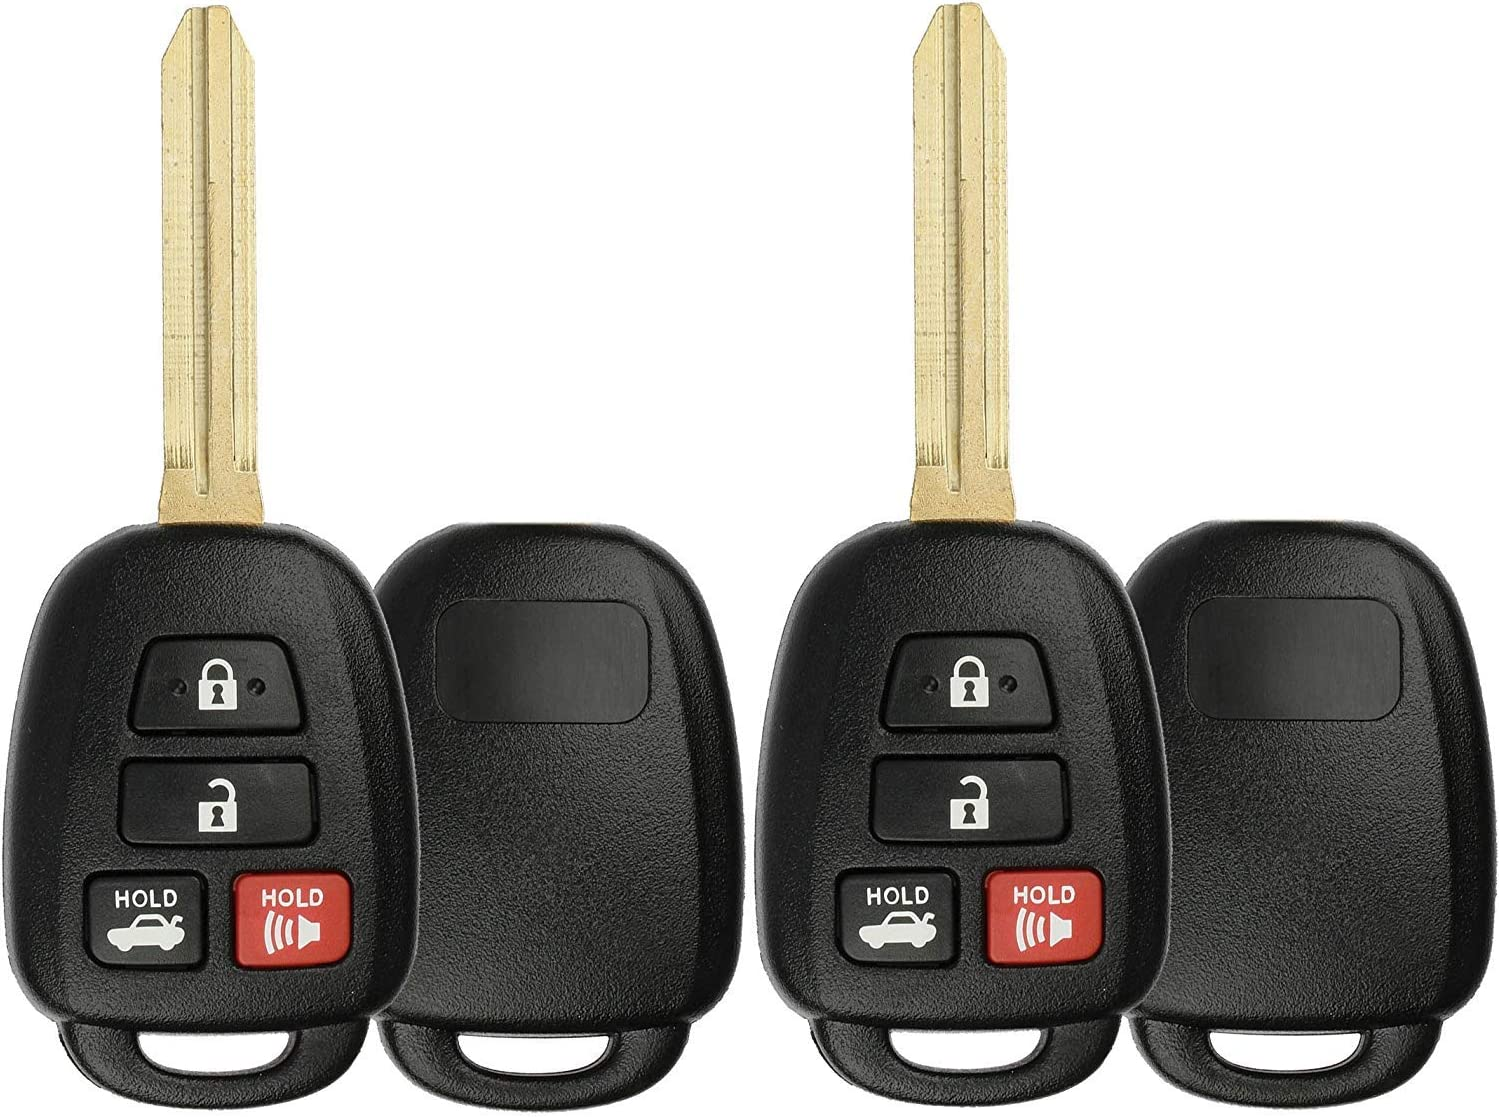 cciyu 1PC Uncut 4 Buttons Keyless Entry Remote Fob Case Replacement fit for Scion FR-S Toyota Camry Corolla RAV4 HYQ12BDM, HYQ12BEL